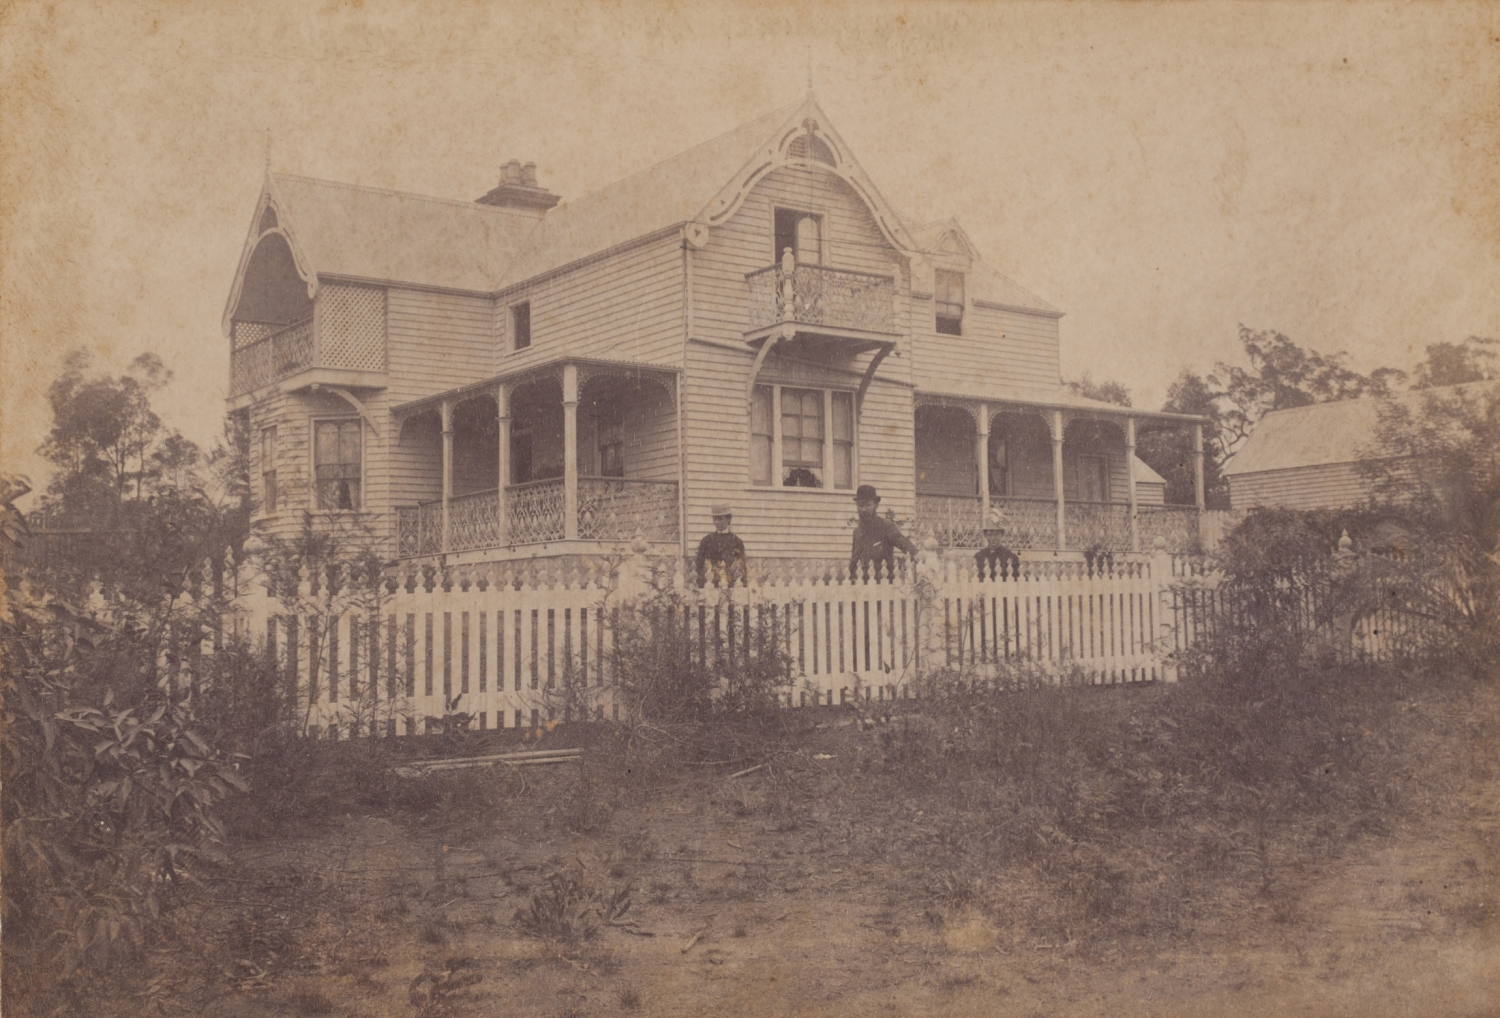 Three people standing behind picket fence in front of two storey house.